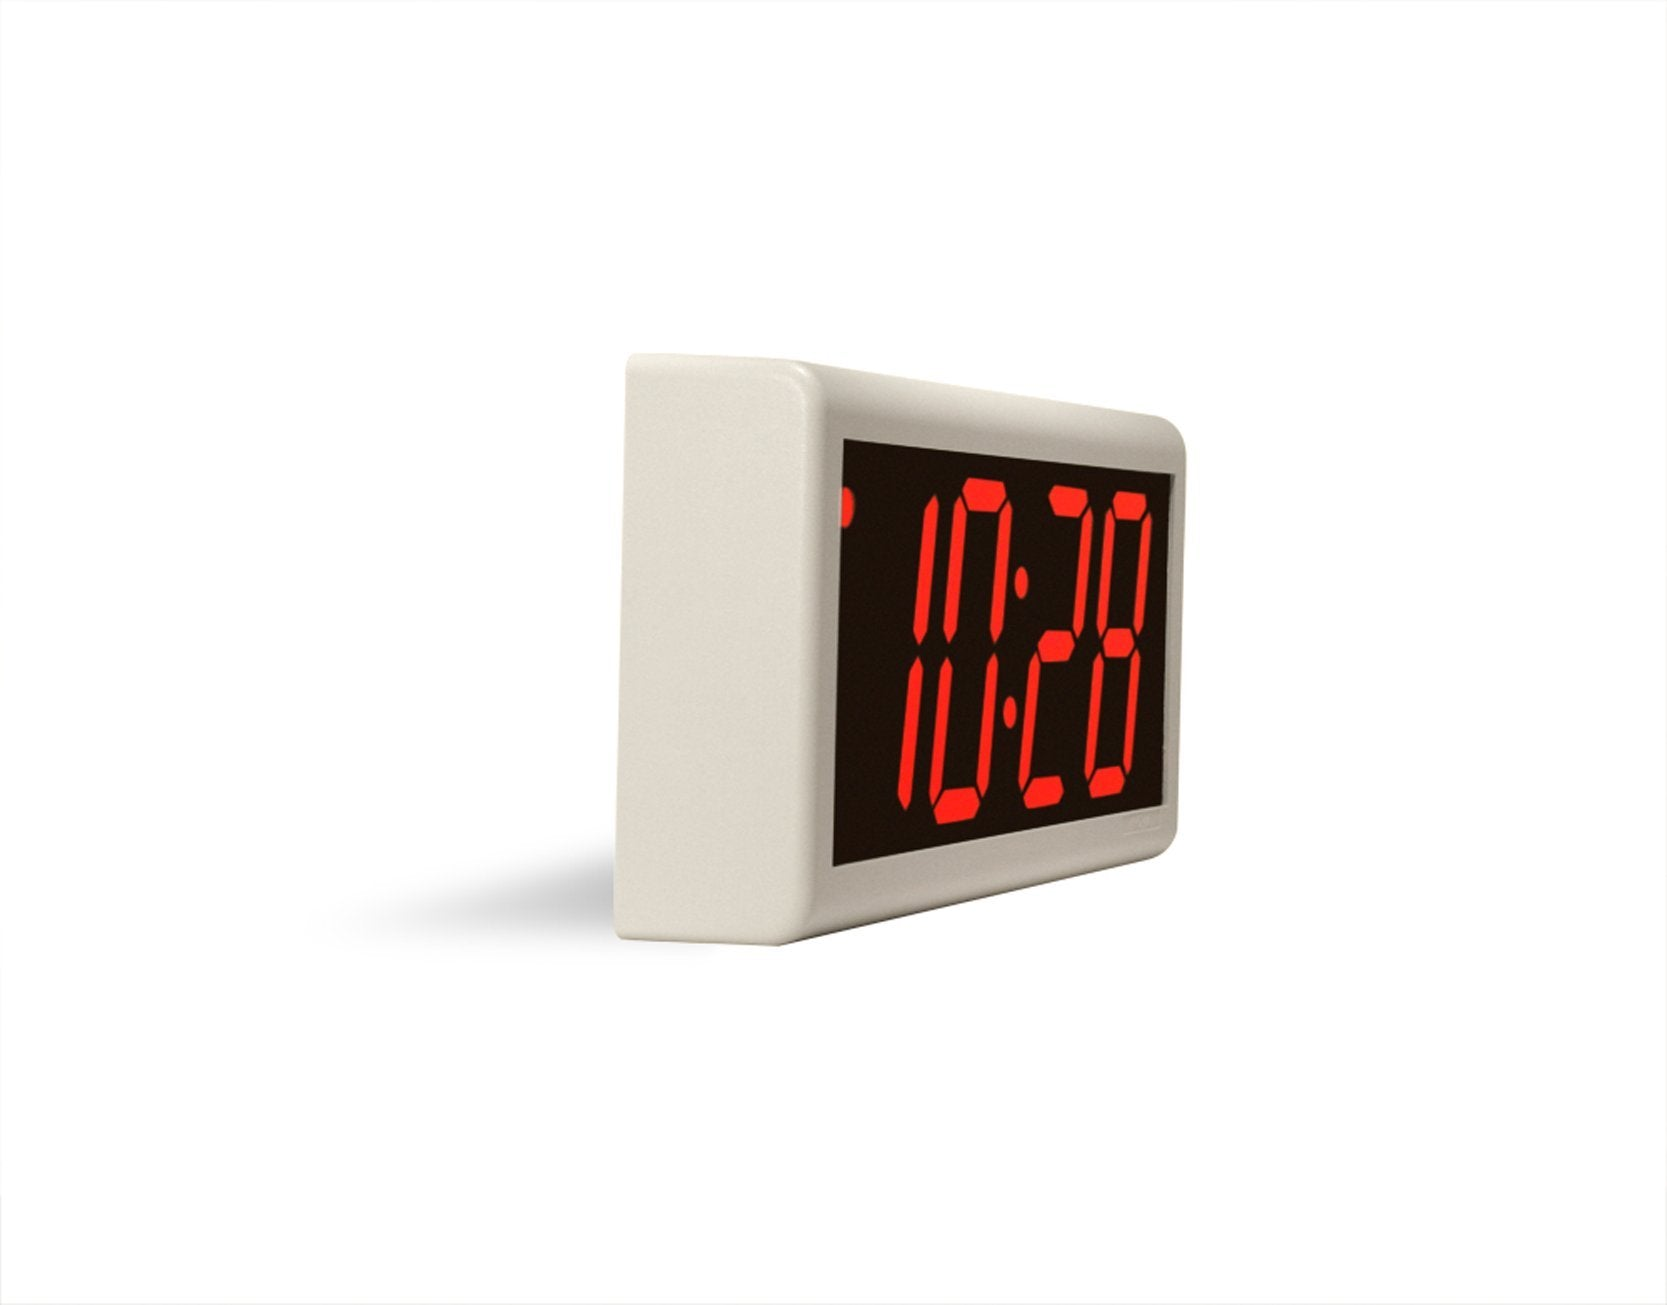 4 Digit PoE Clock, Red LED, Off-White ABS Plastic Case